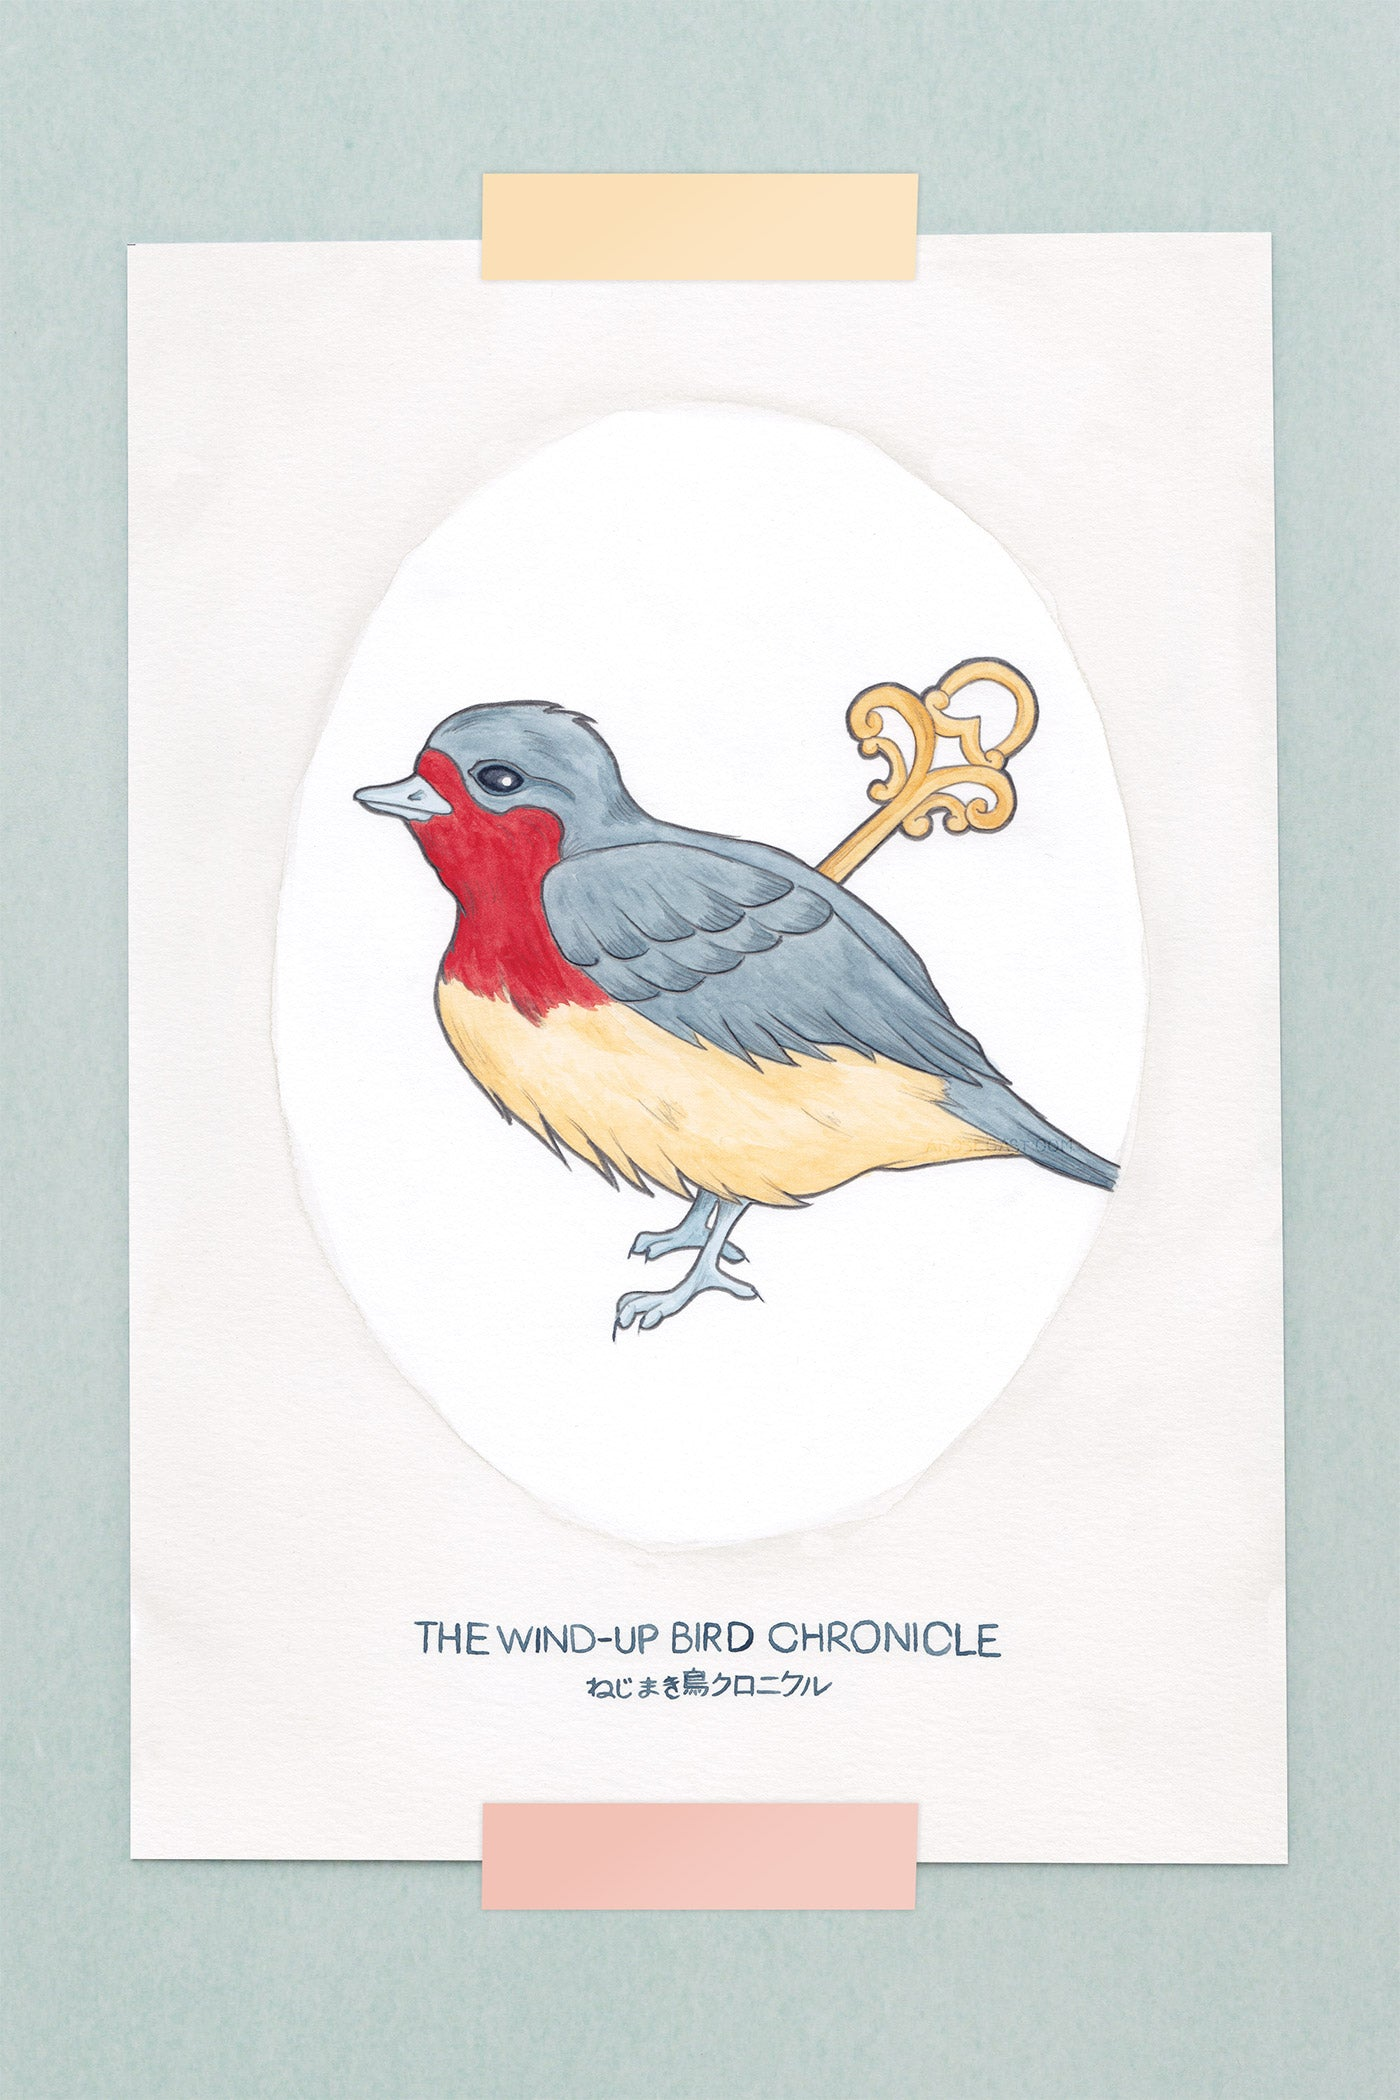 Haruki Murakami's The Wind-Up Bird Chronicle Novel Illustration Art Print - A Rose Cast